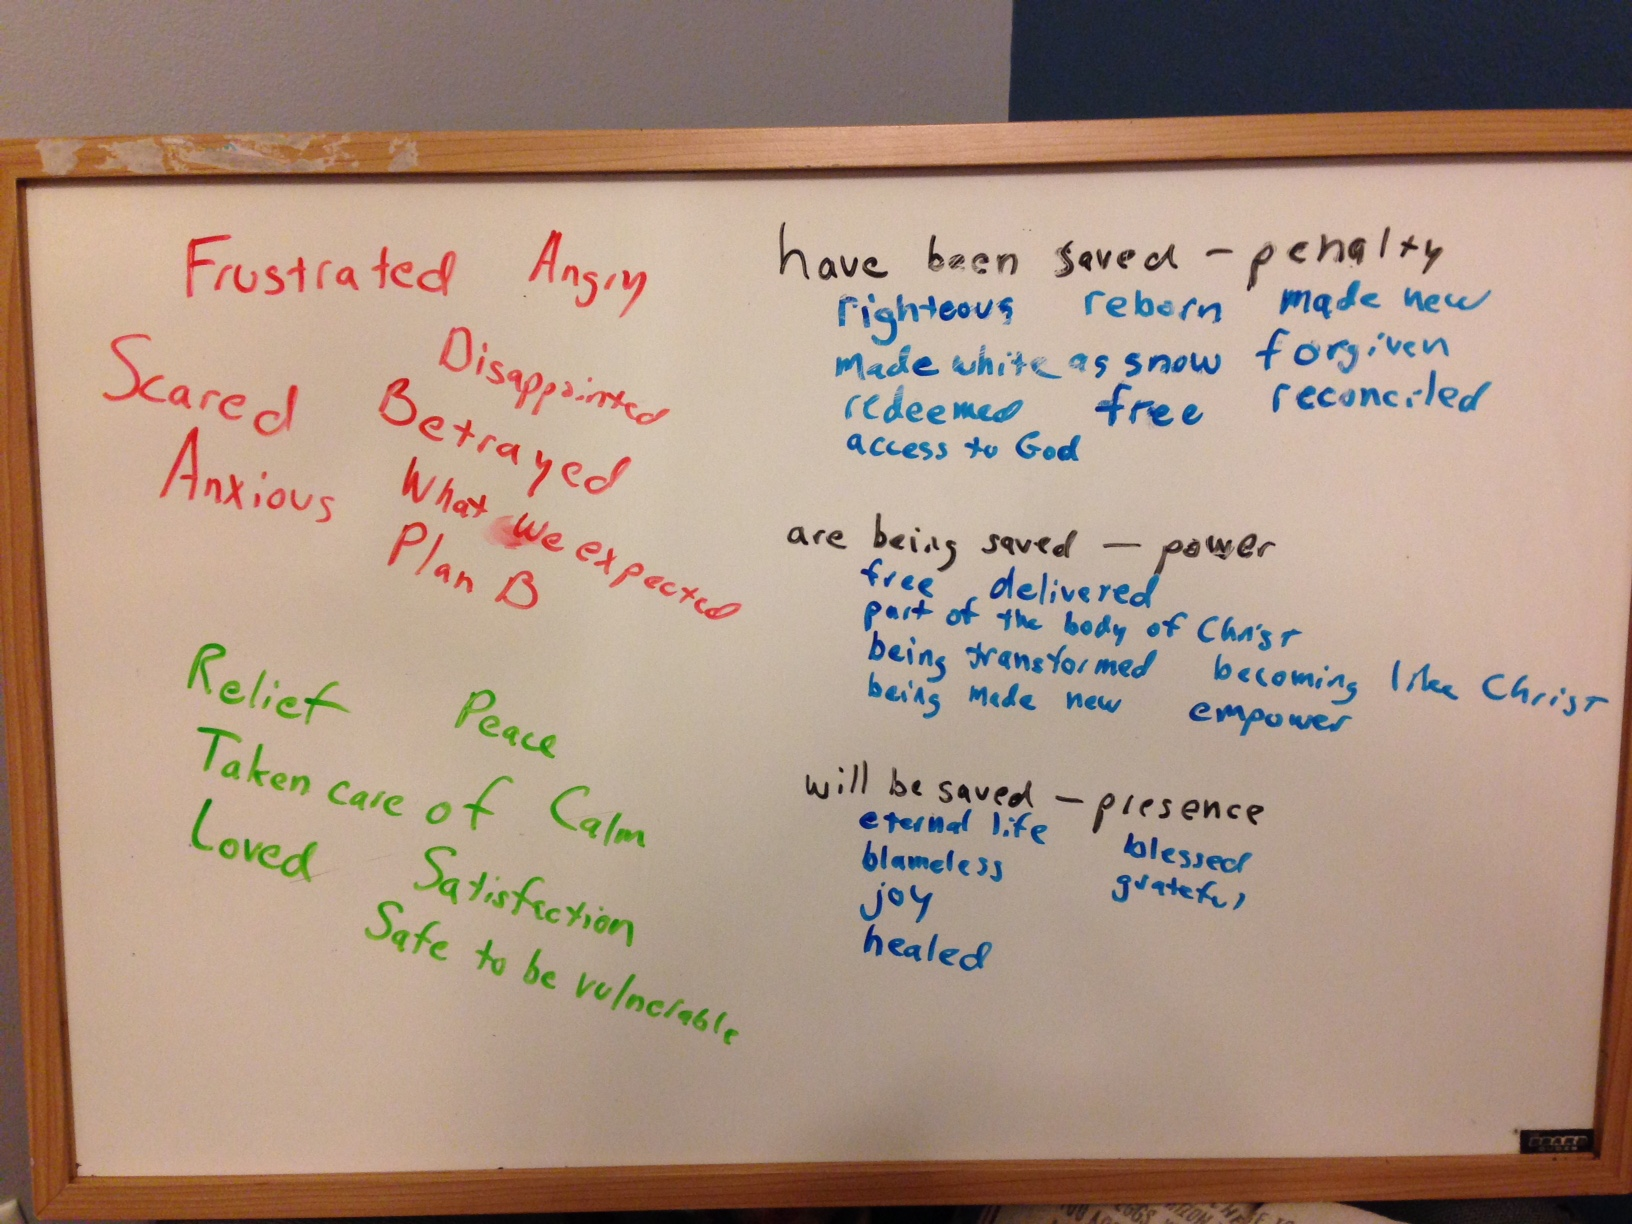 whiteboard-promises-saved-from.JPG